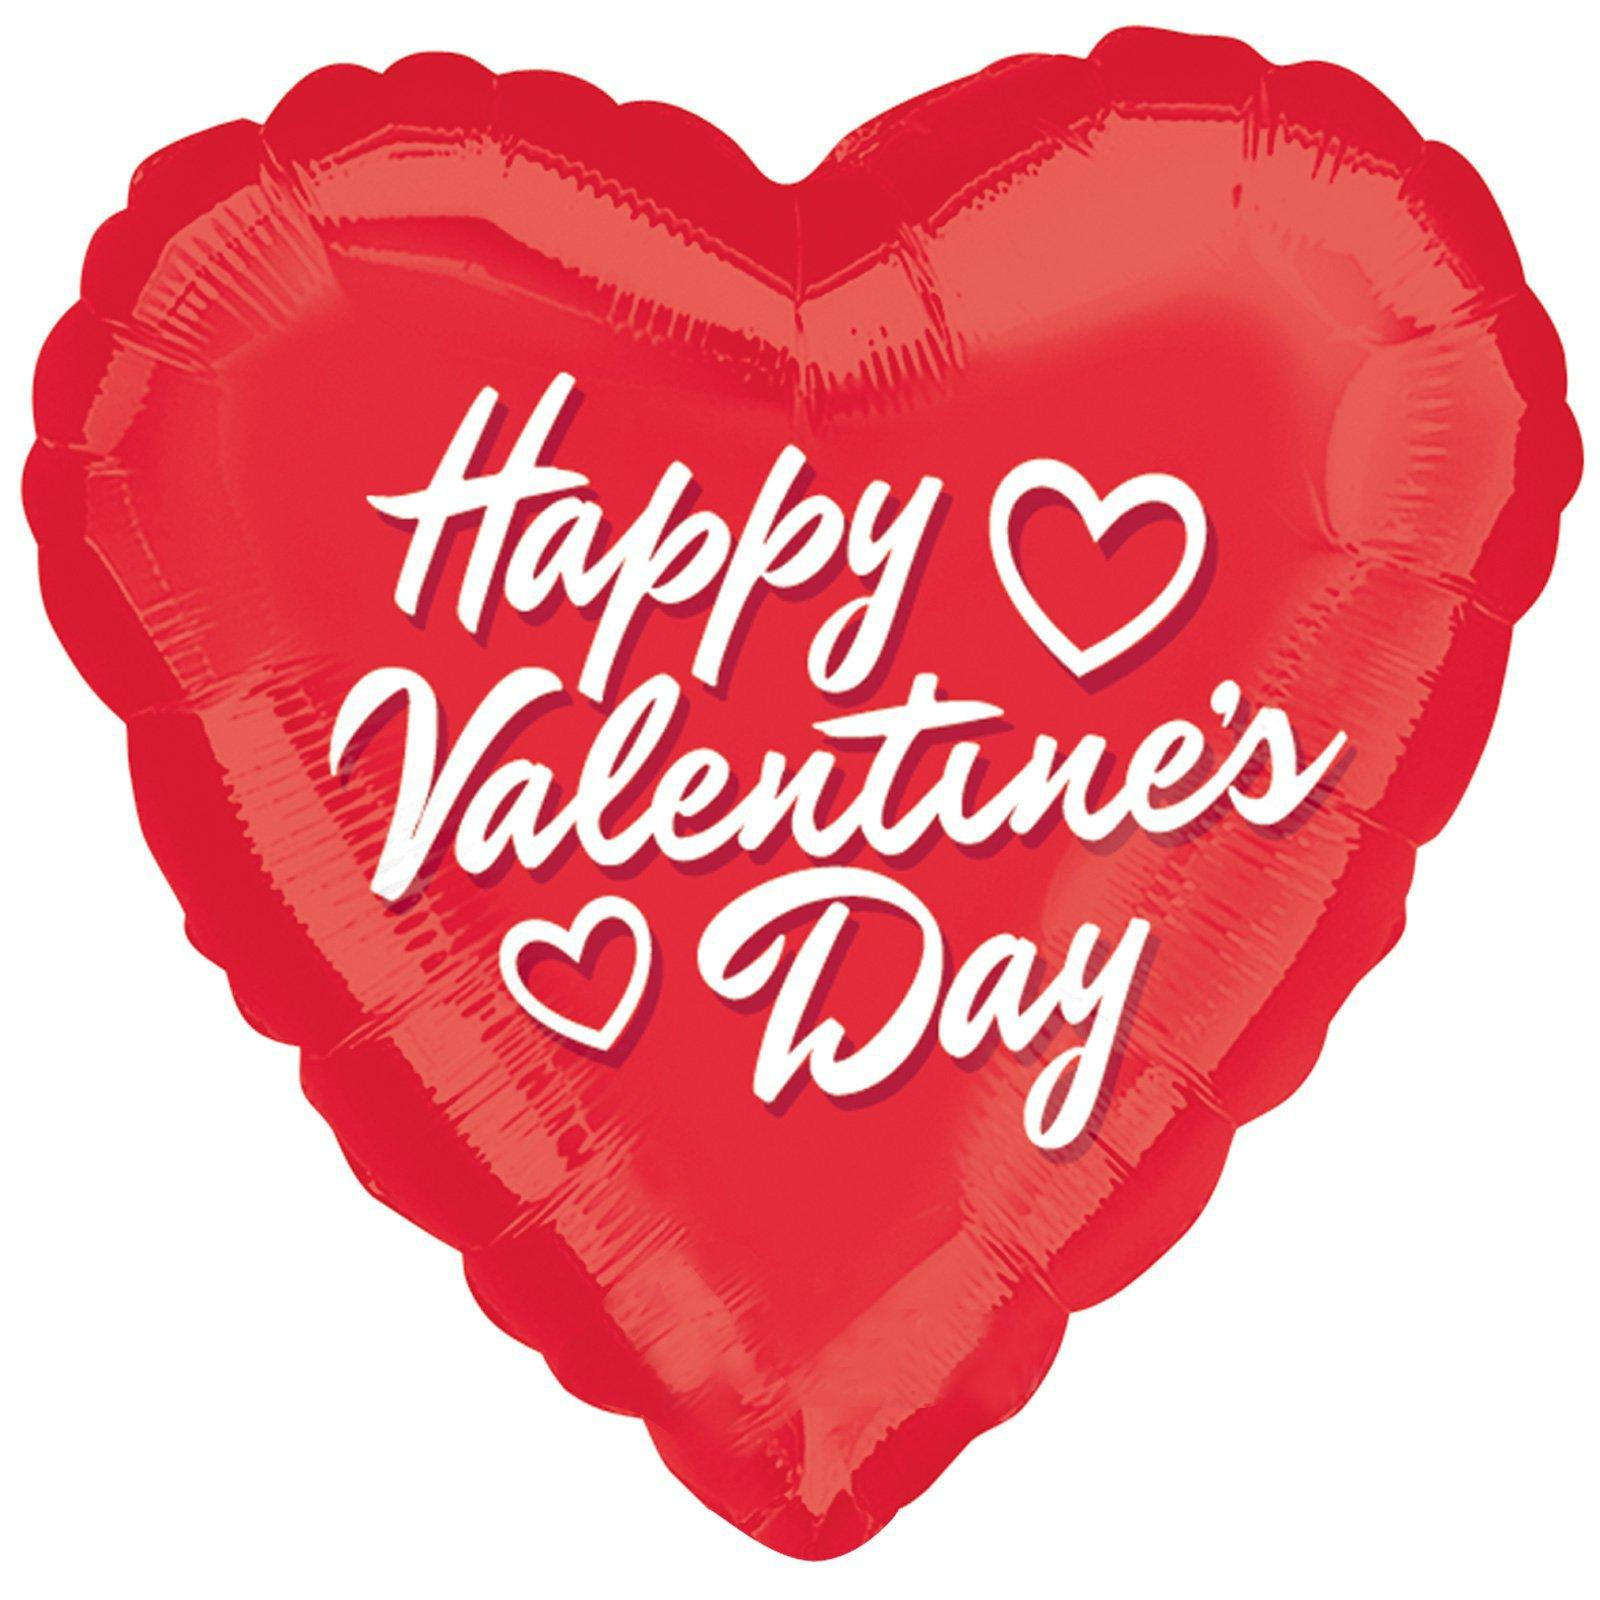 Pictures of valentines free. 2017 clipart valentine's day